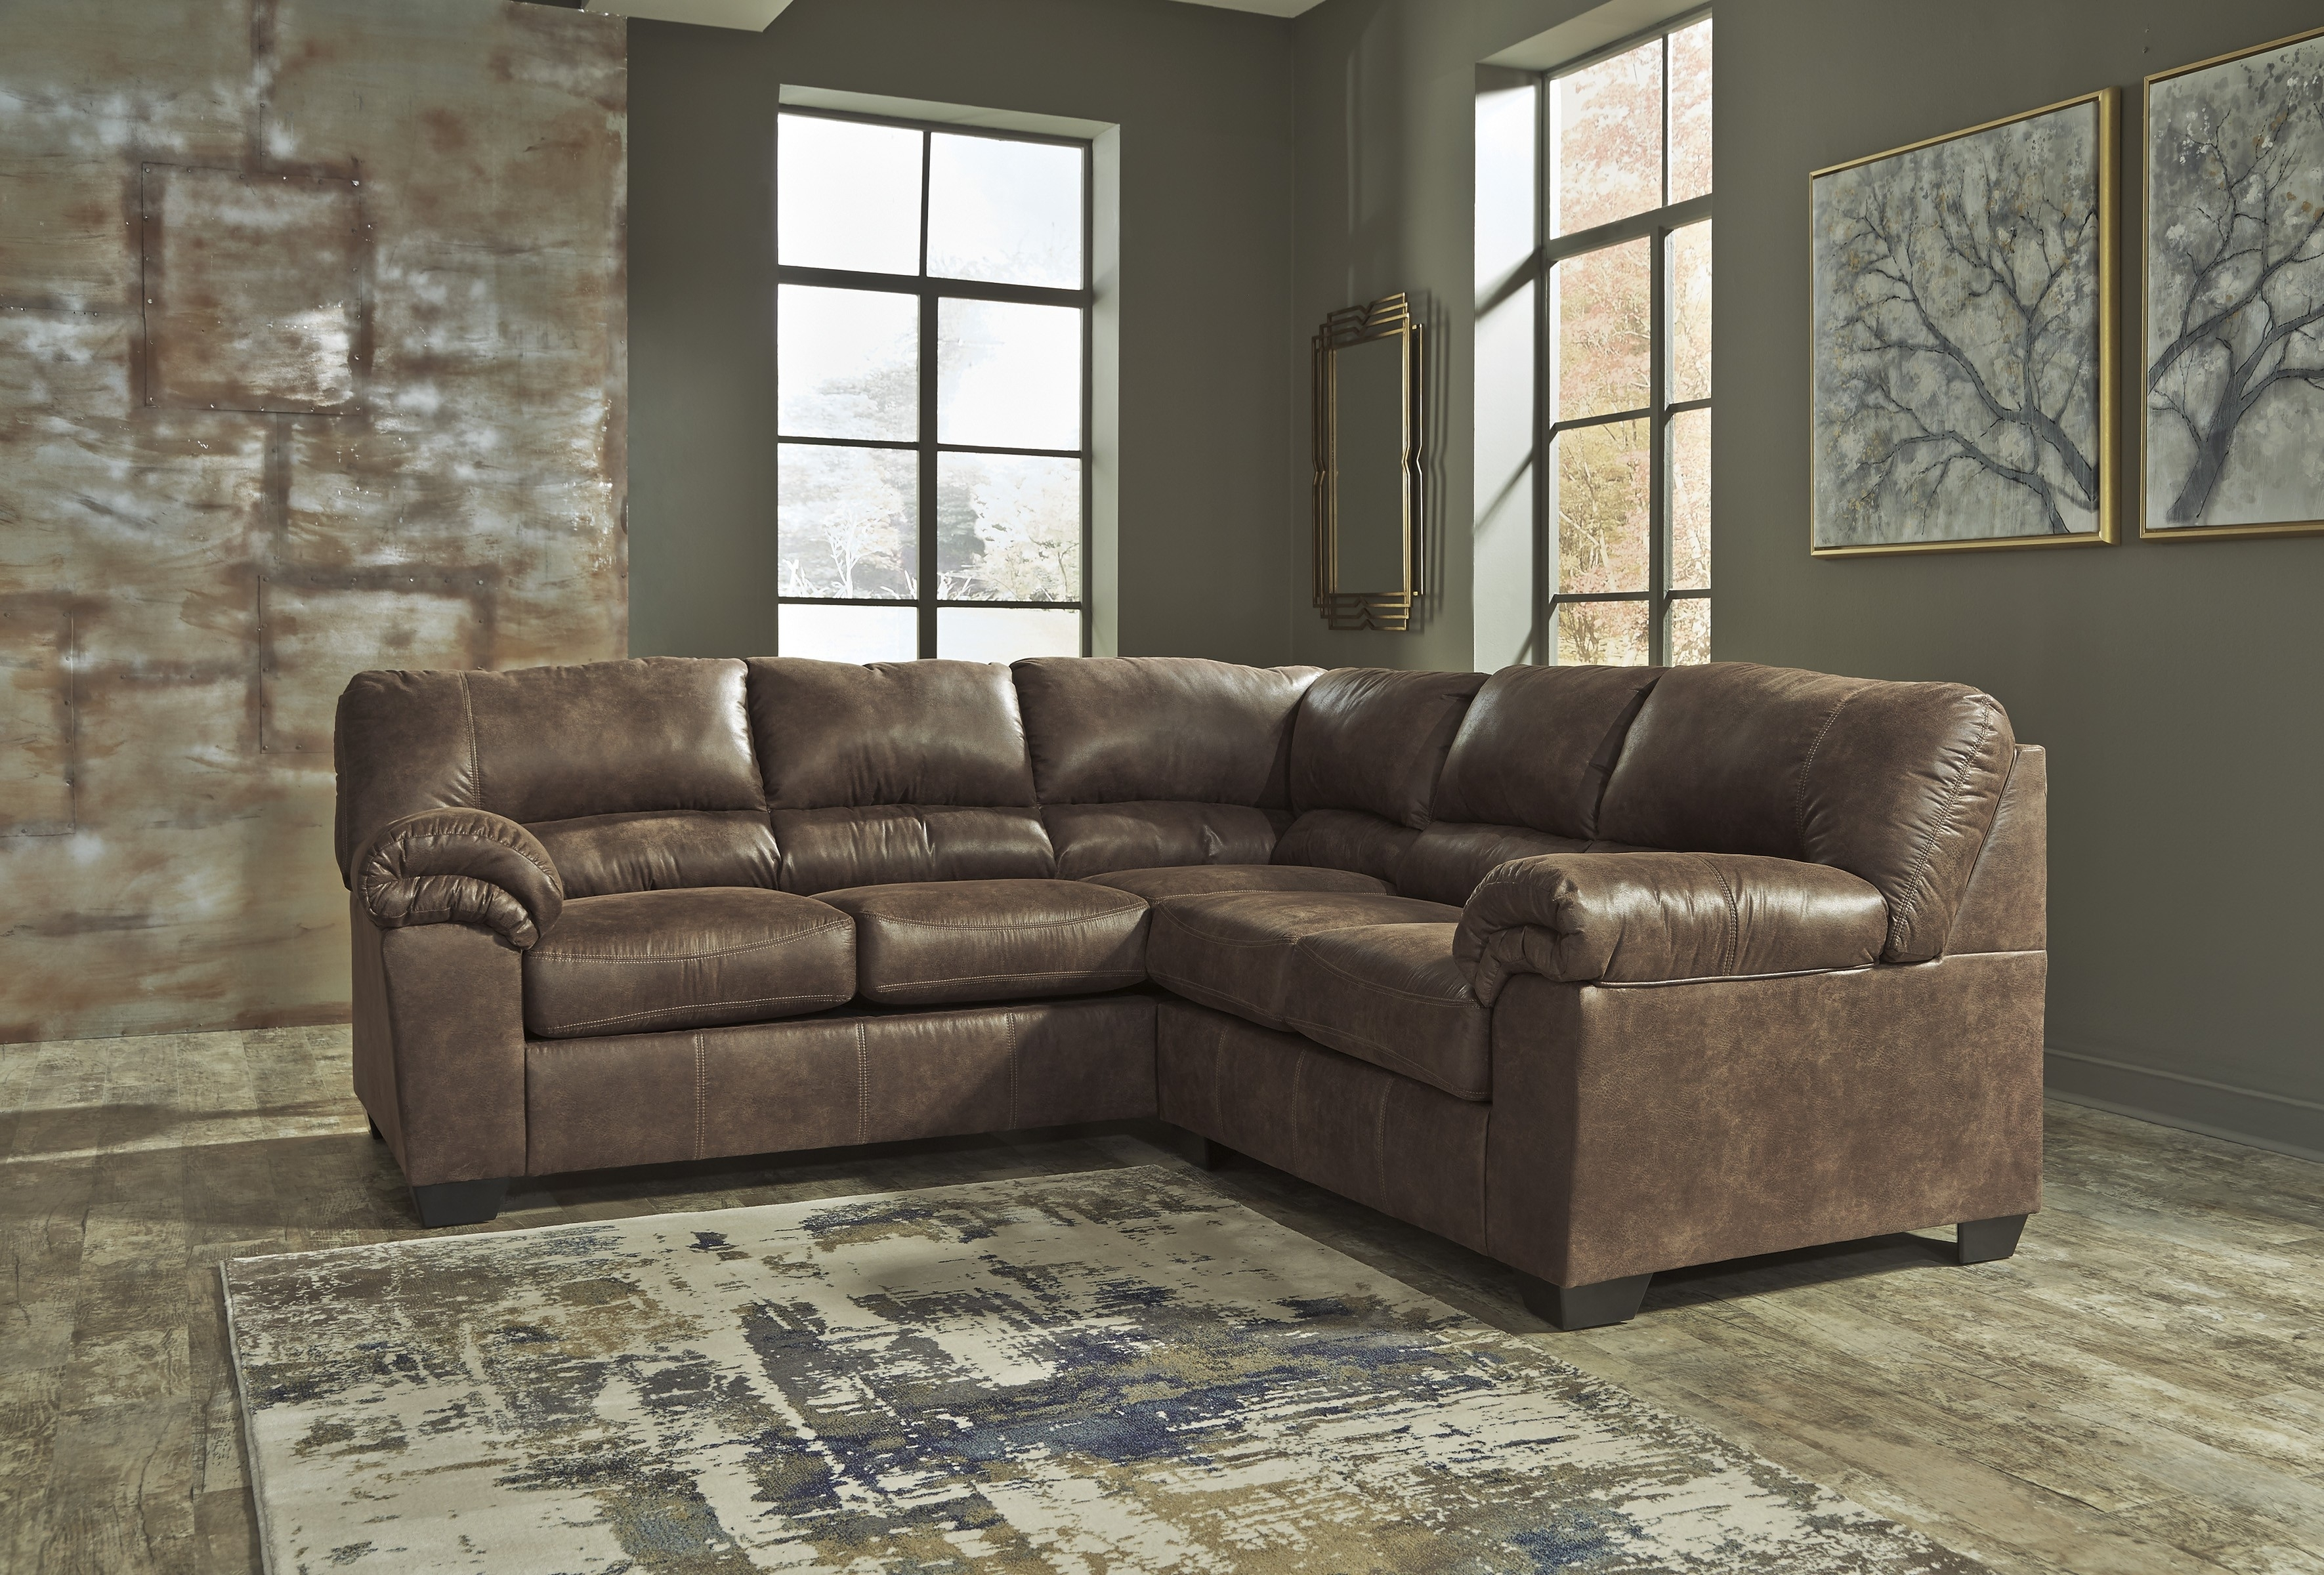 Laf Sofa Raf Loveseat | Baci Living Room With Regard To Turdur 2 Piece Sectionals With Raf Loveseat (View 10 of 25)